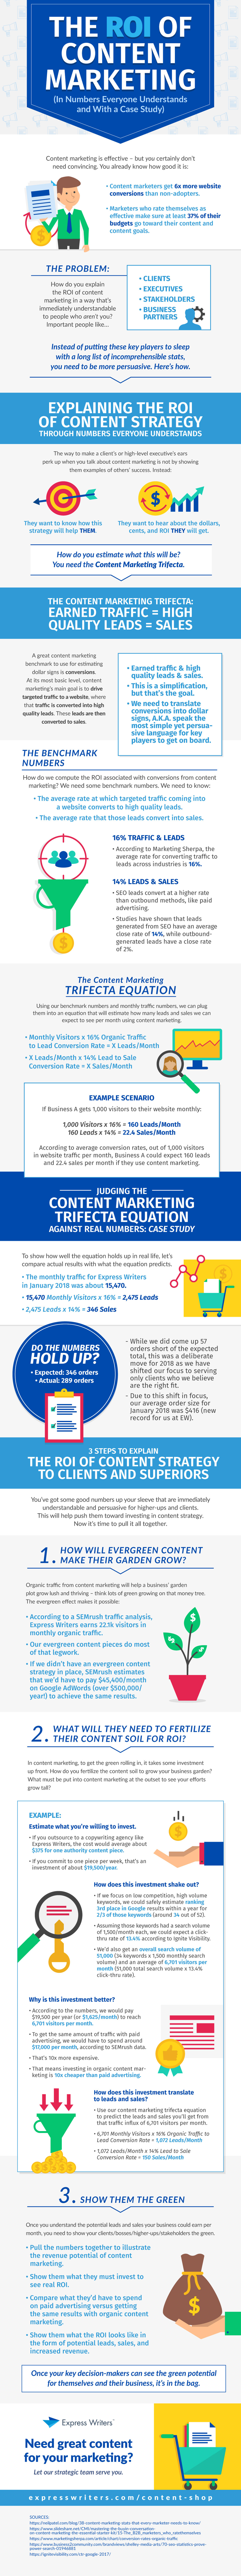 ROI of content marketing infographic